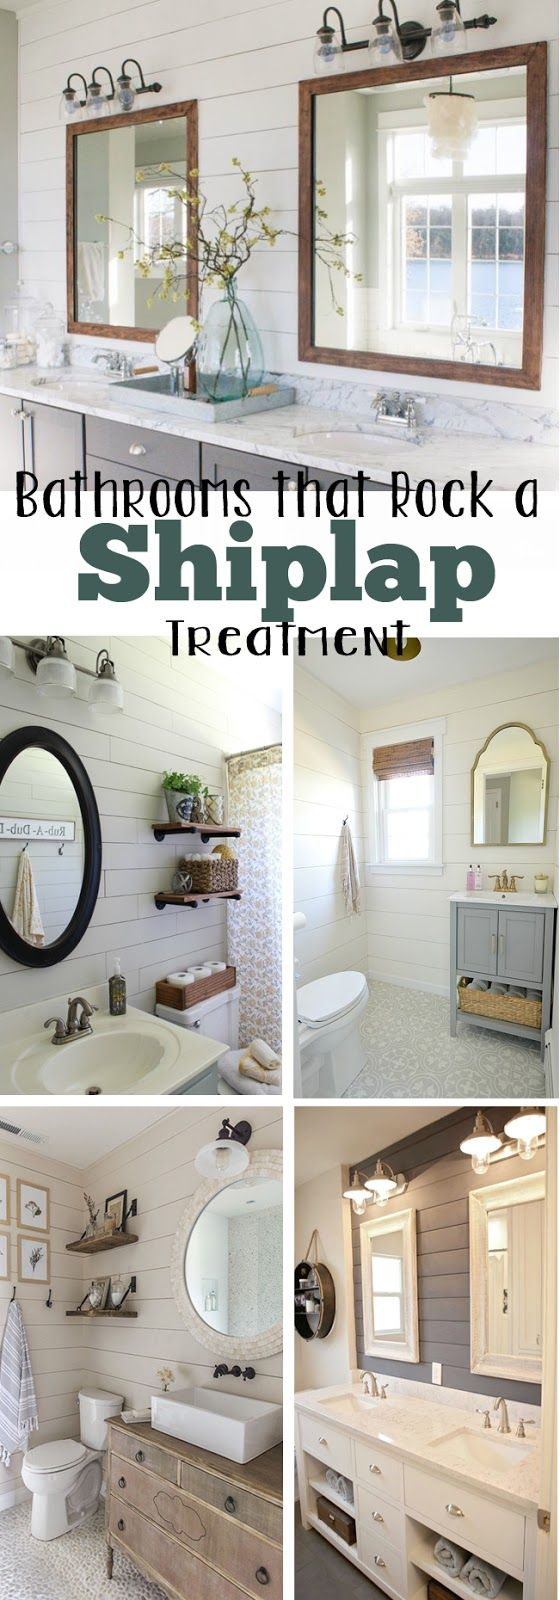 10 Bathrooms That Rock A Shiplap Treatment Bathrooms